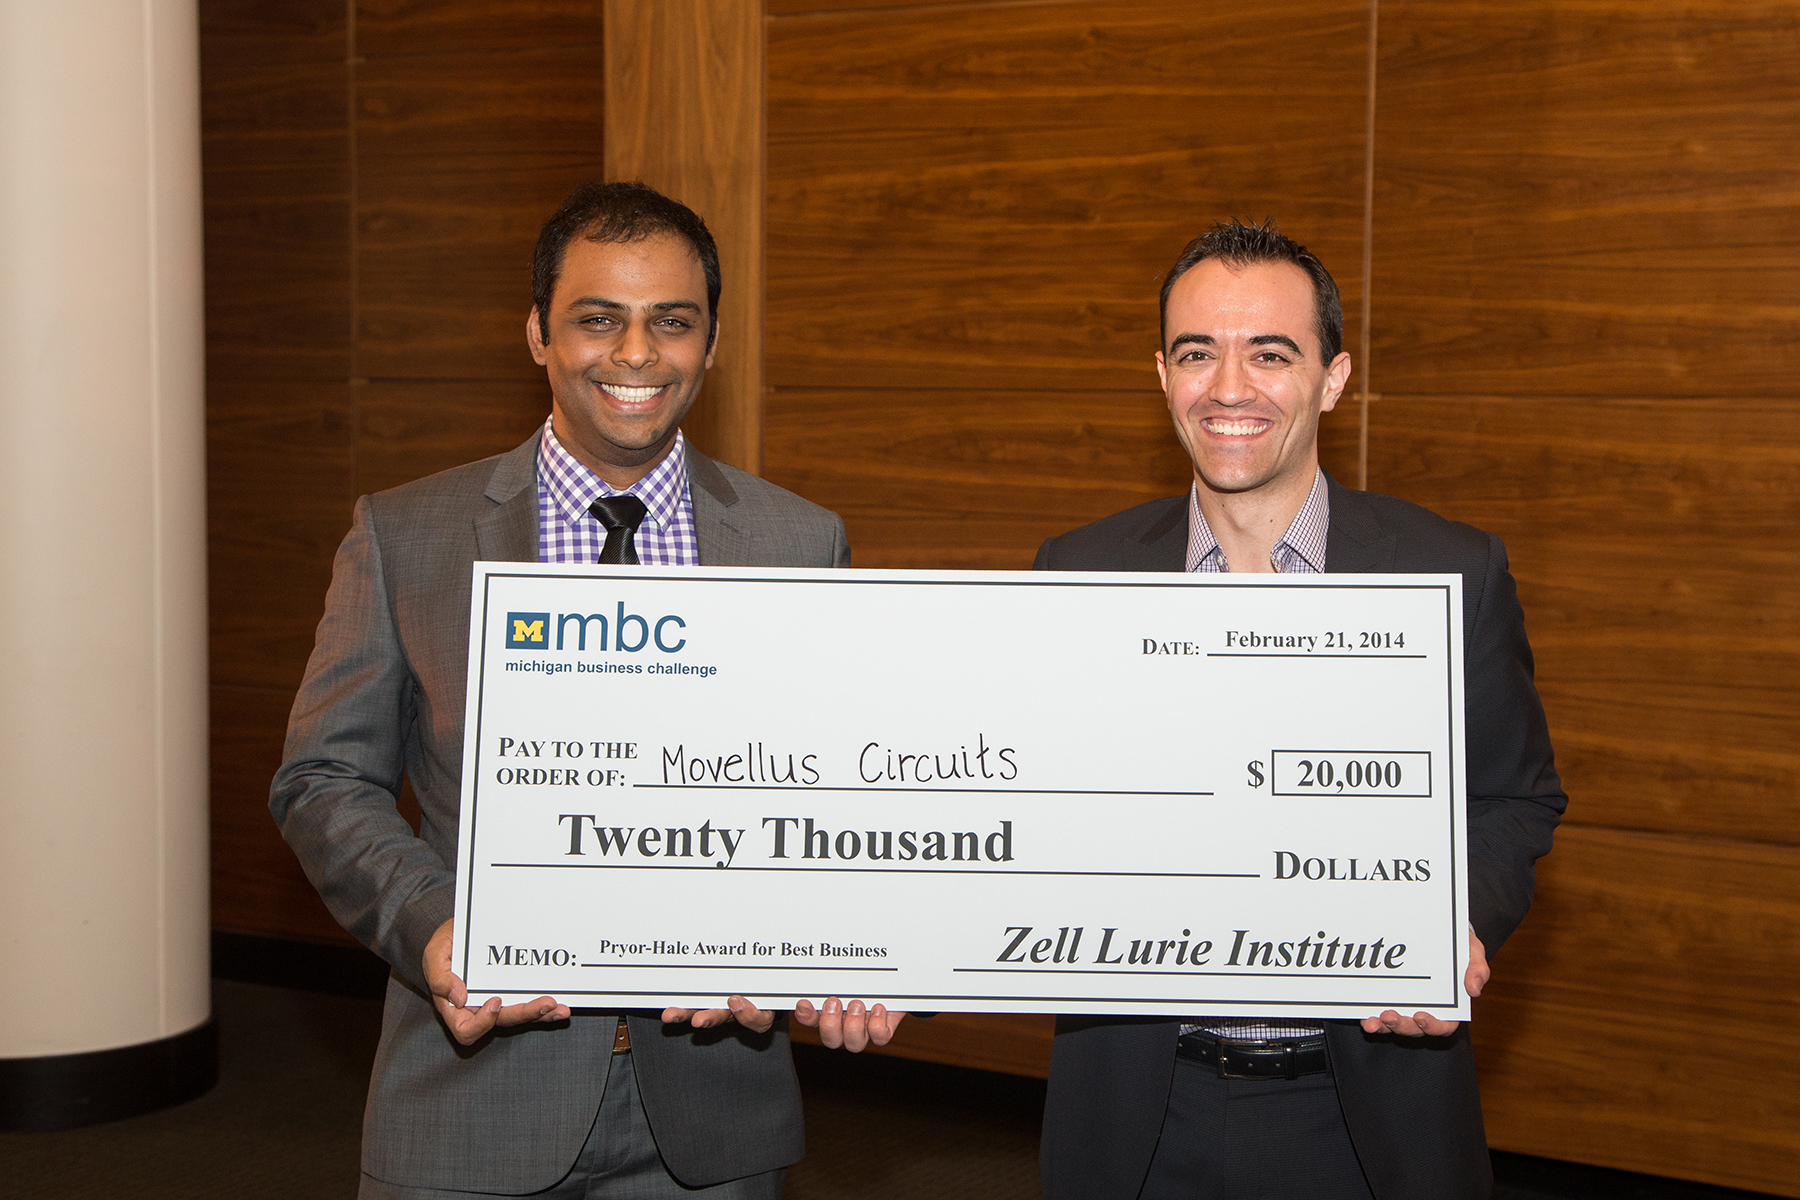 Pryor-Hale Award for Best Business for $20,000 went to Movellus Circuits represented by Muhammad Faisal (EECS PhD '14) and Daniel Andersen (MBA '14). Image credit: Scott Soderberg